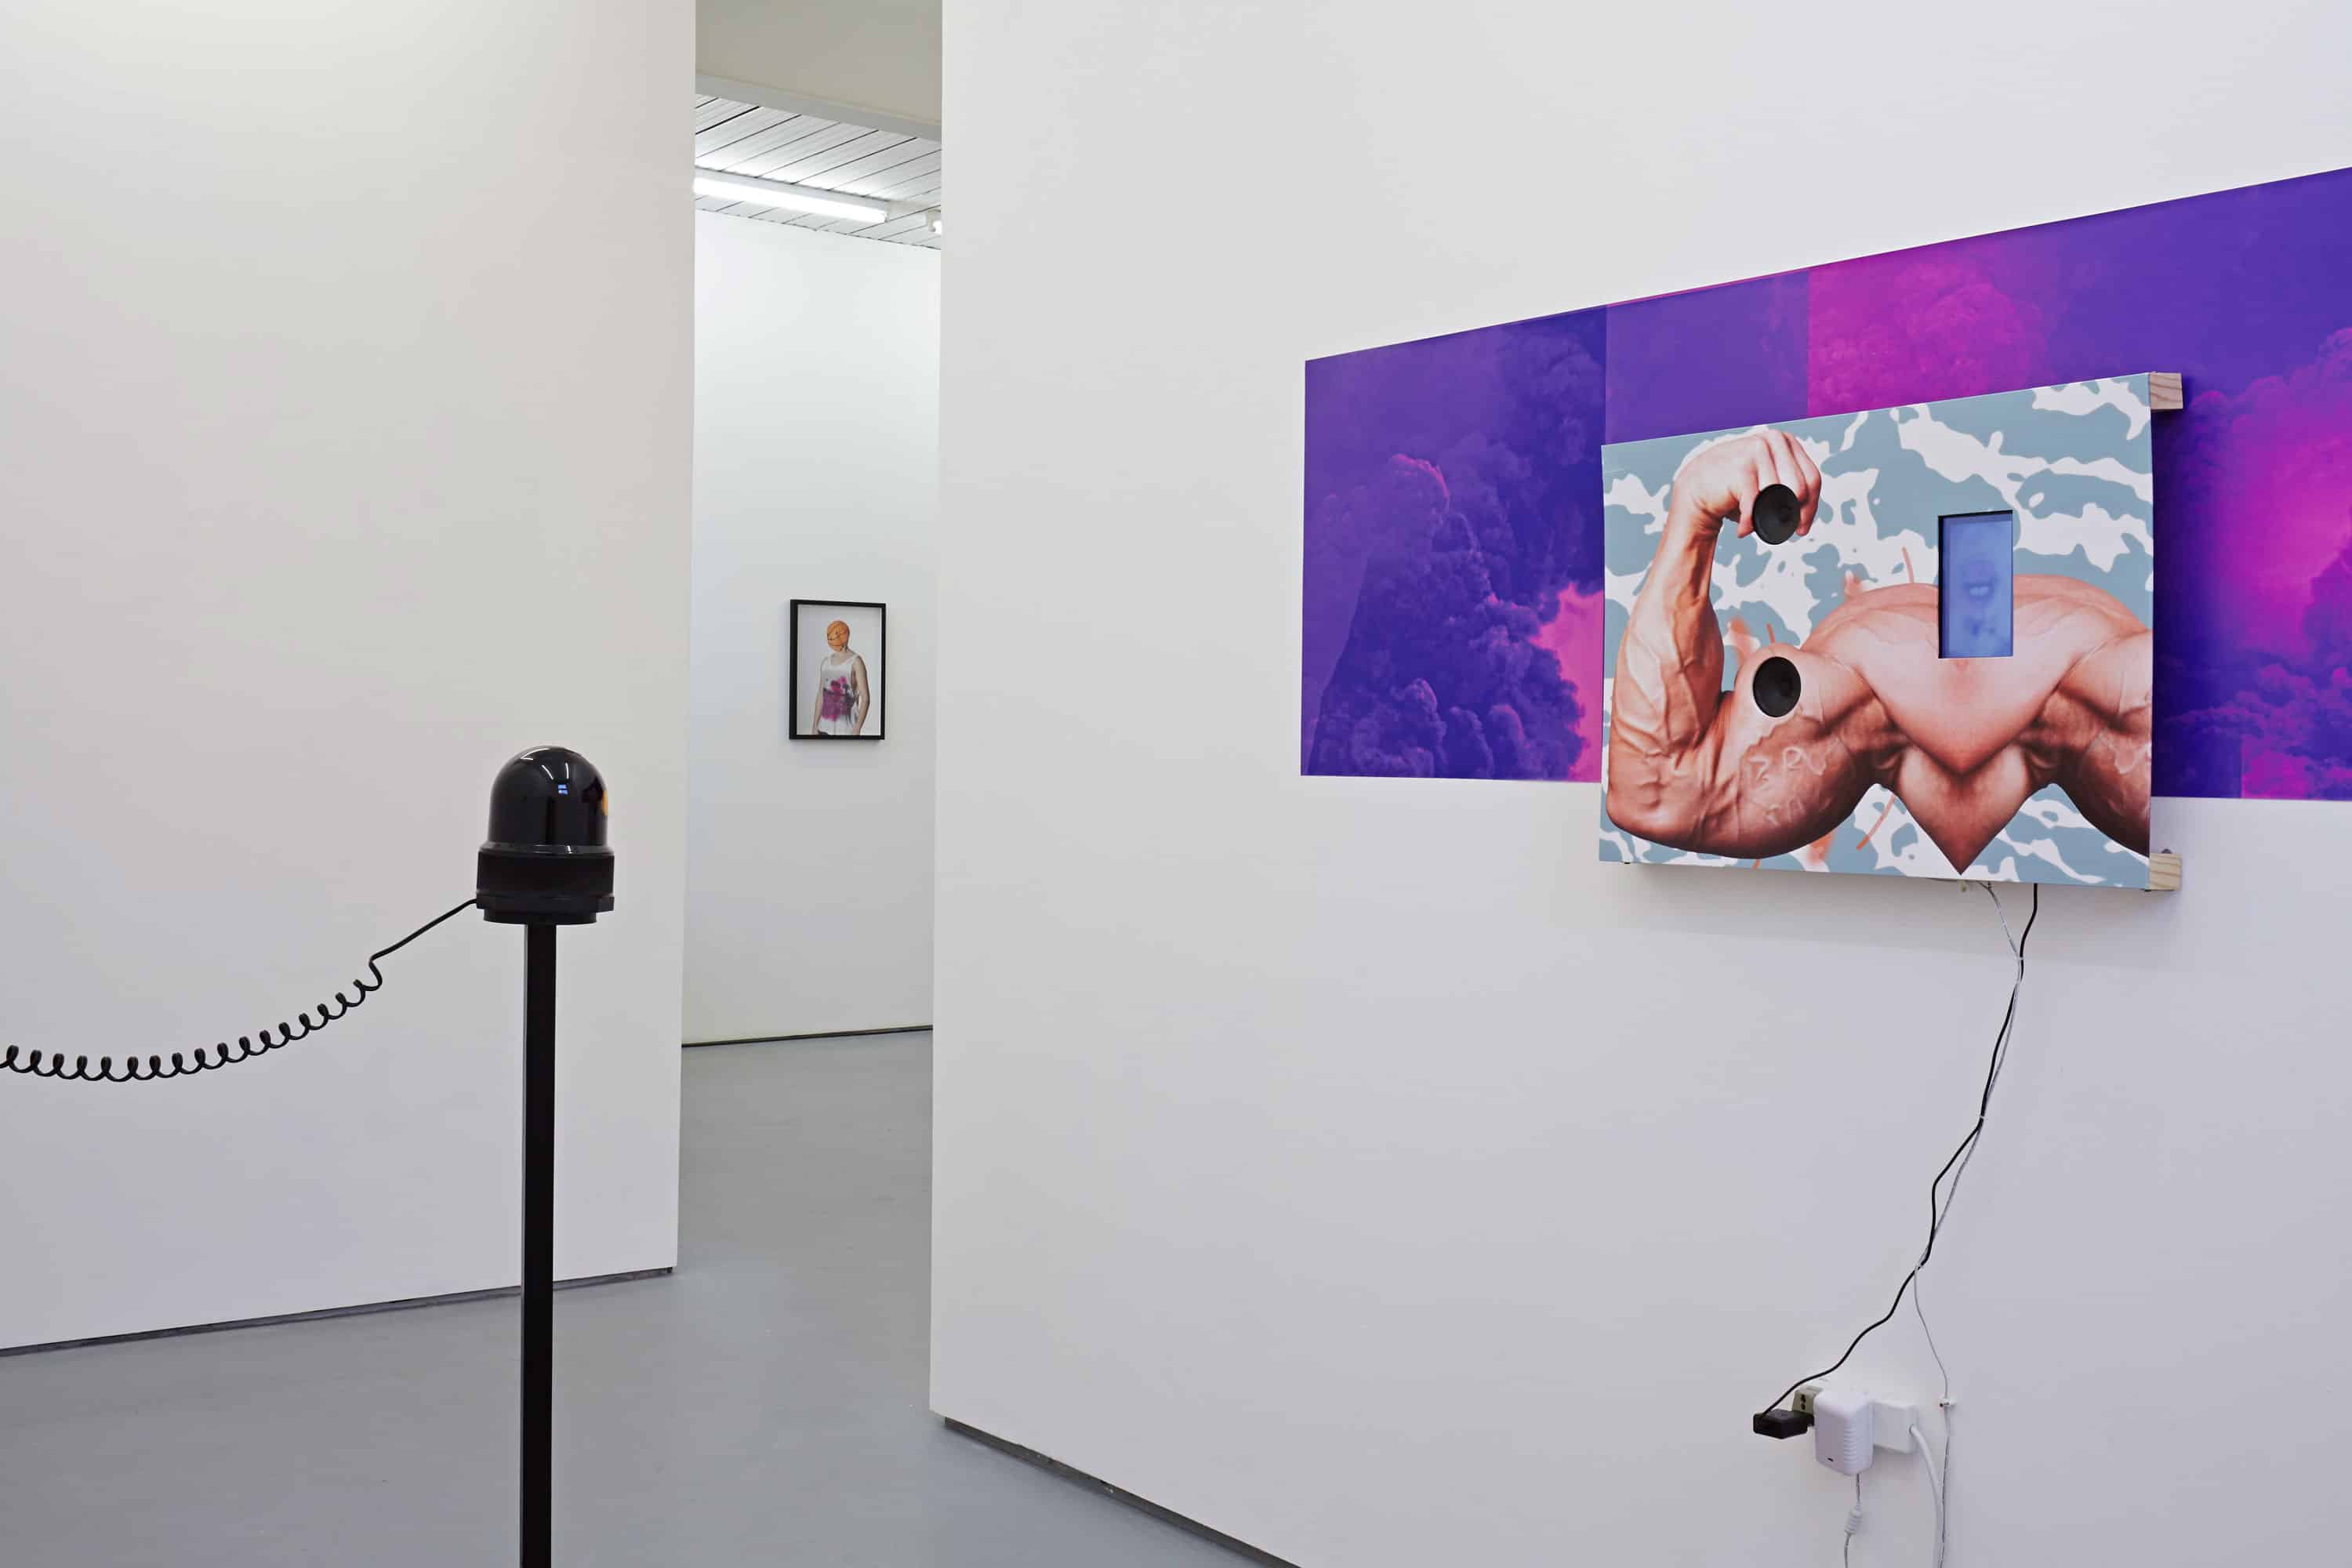 Norbert Delman, View on exhibition, Illegal Personal Contact With An Opponent, 2015